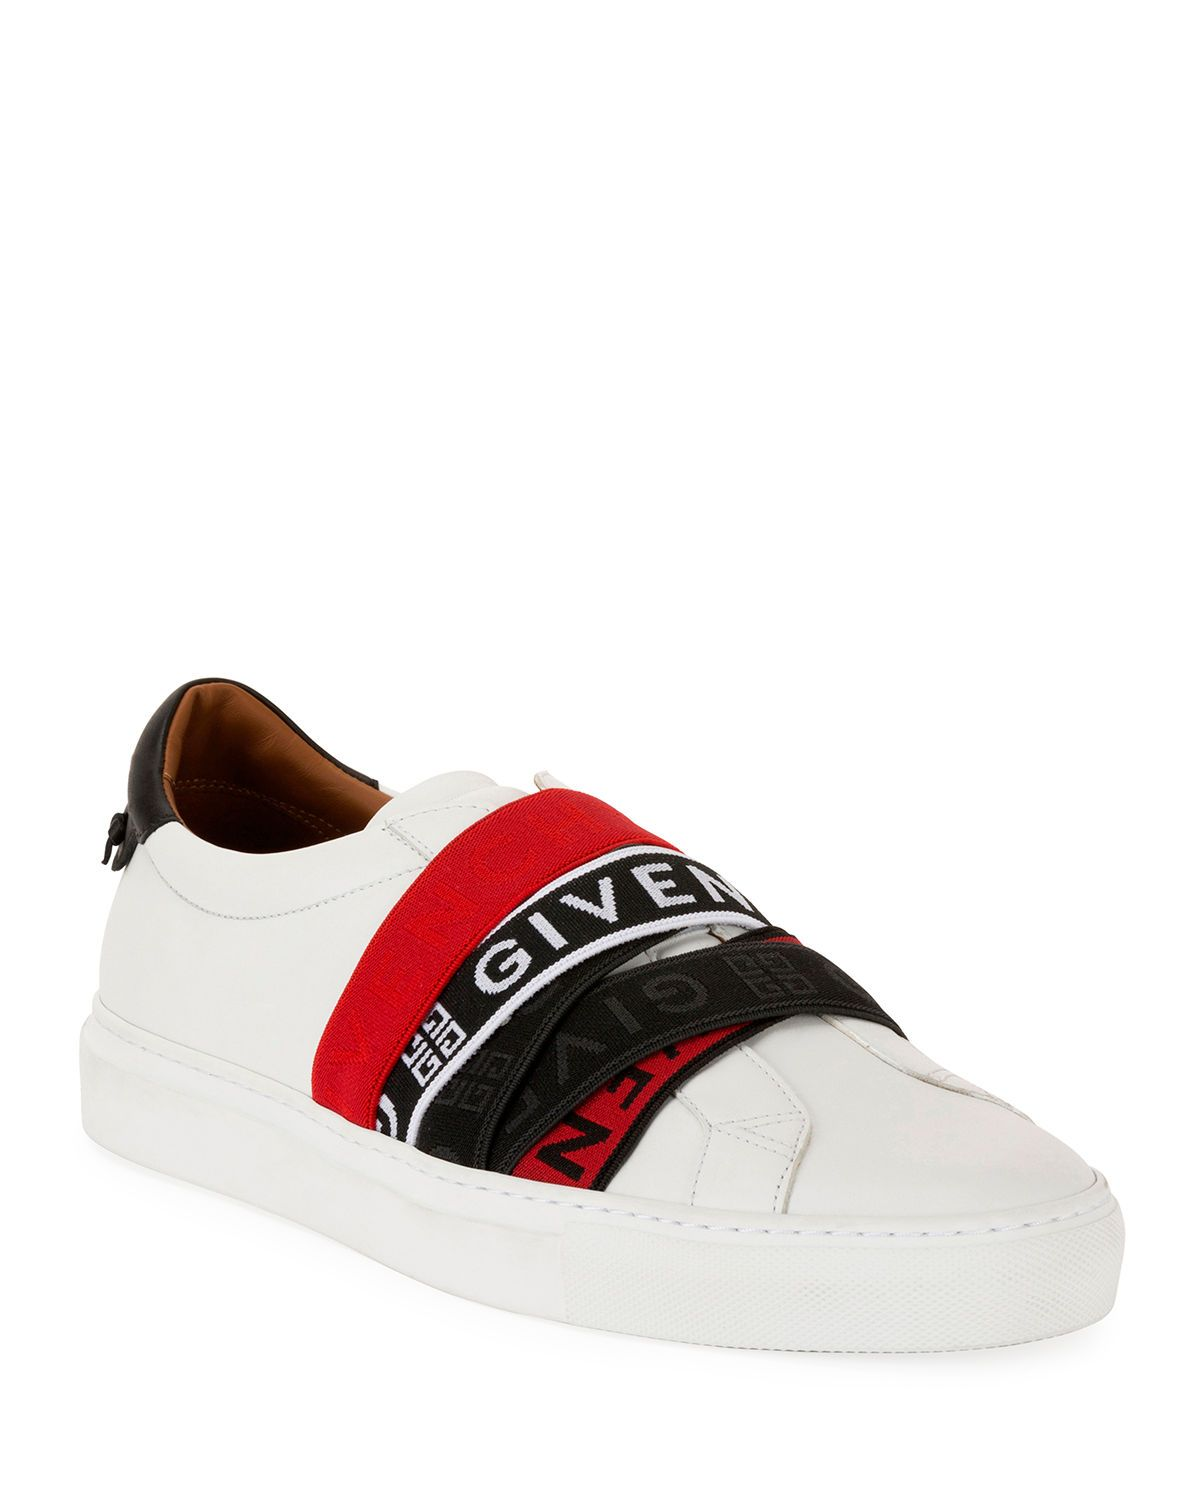 149f6ddfe792f GIVENCHY Men's Urban Street Multi-Elastic Slip-On Sneakers ...